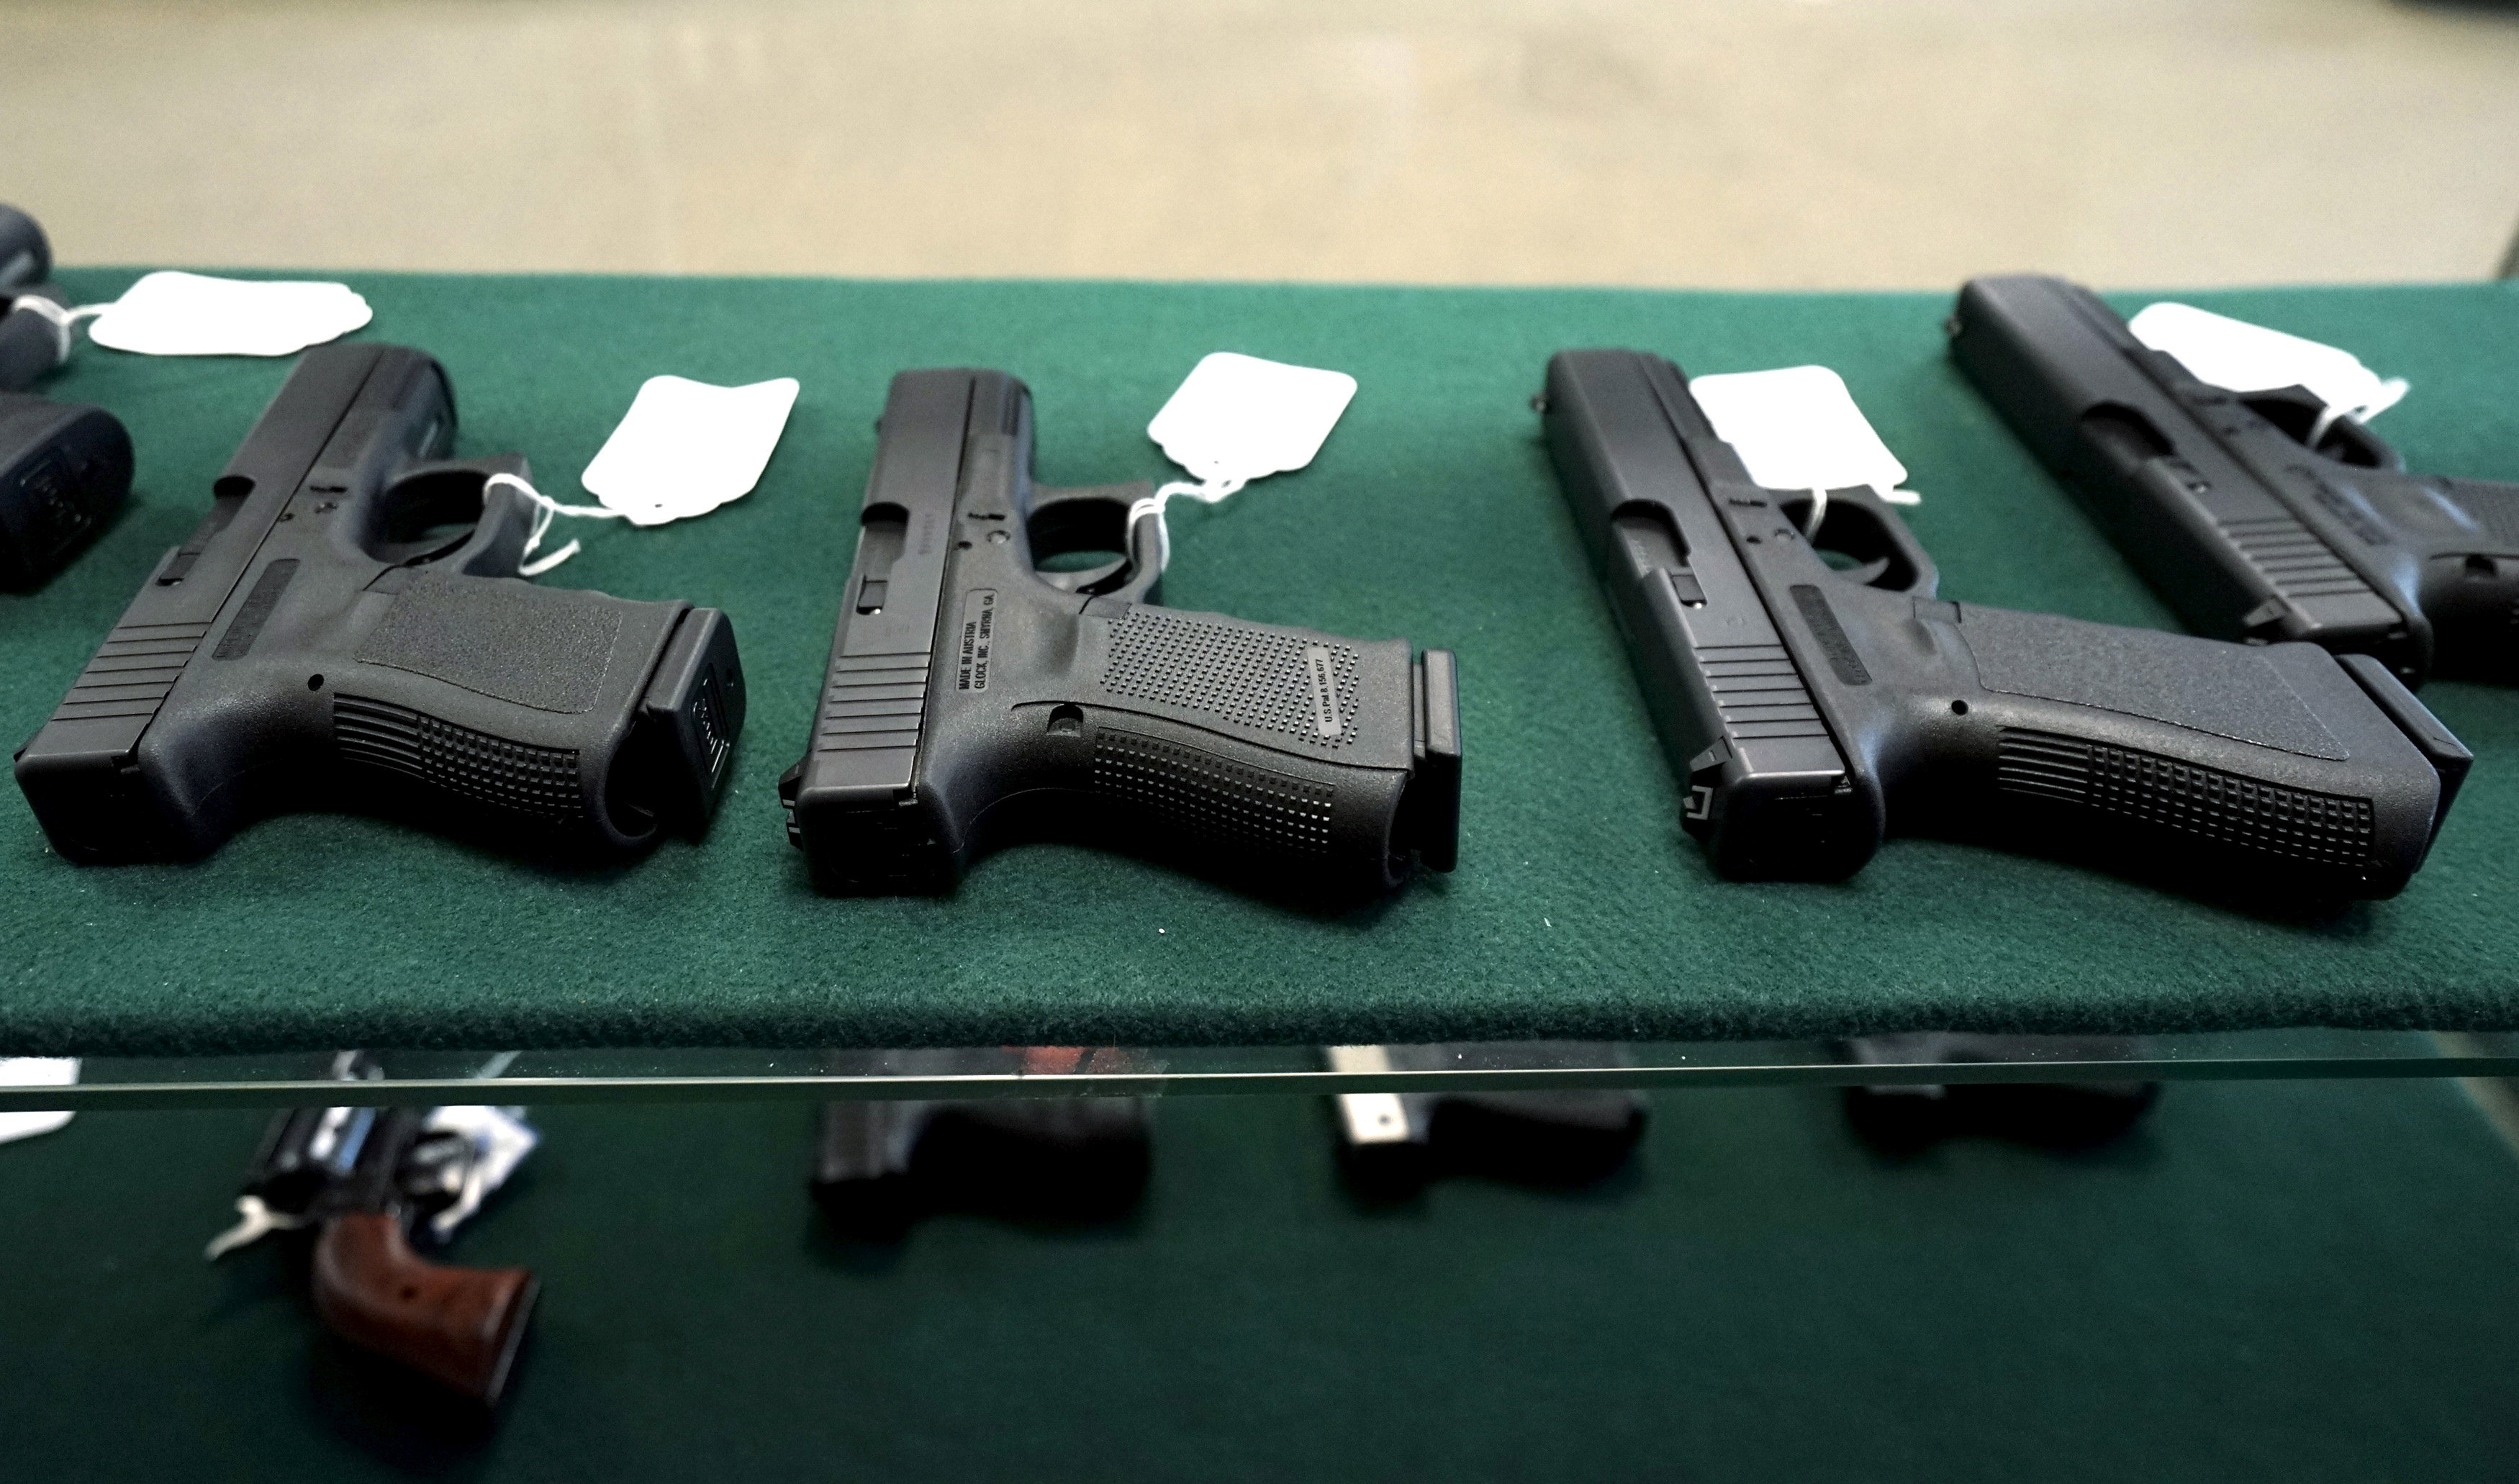 A selection of Glock pistols are seen for sale at the Pony Express Firearms shop in Parker, Colorado